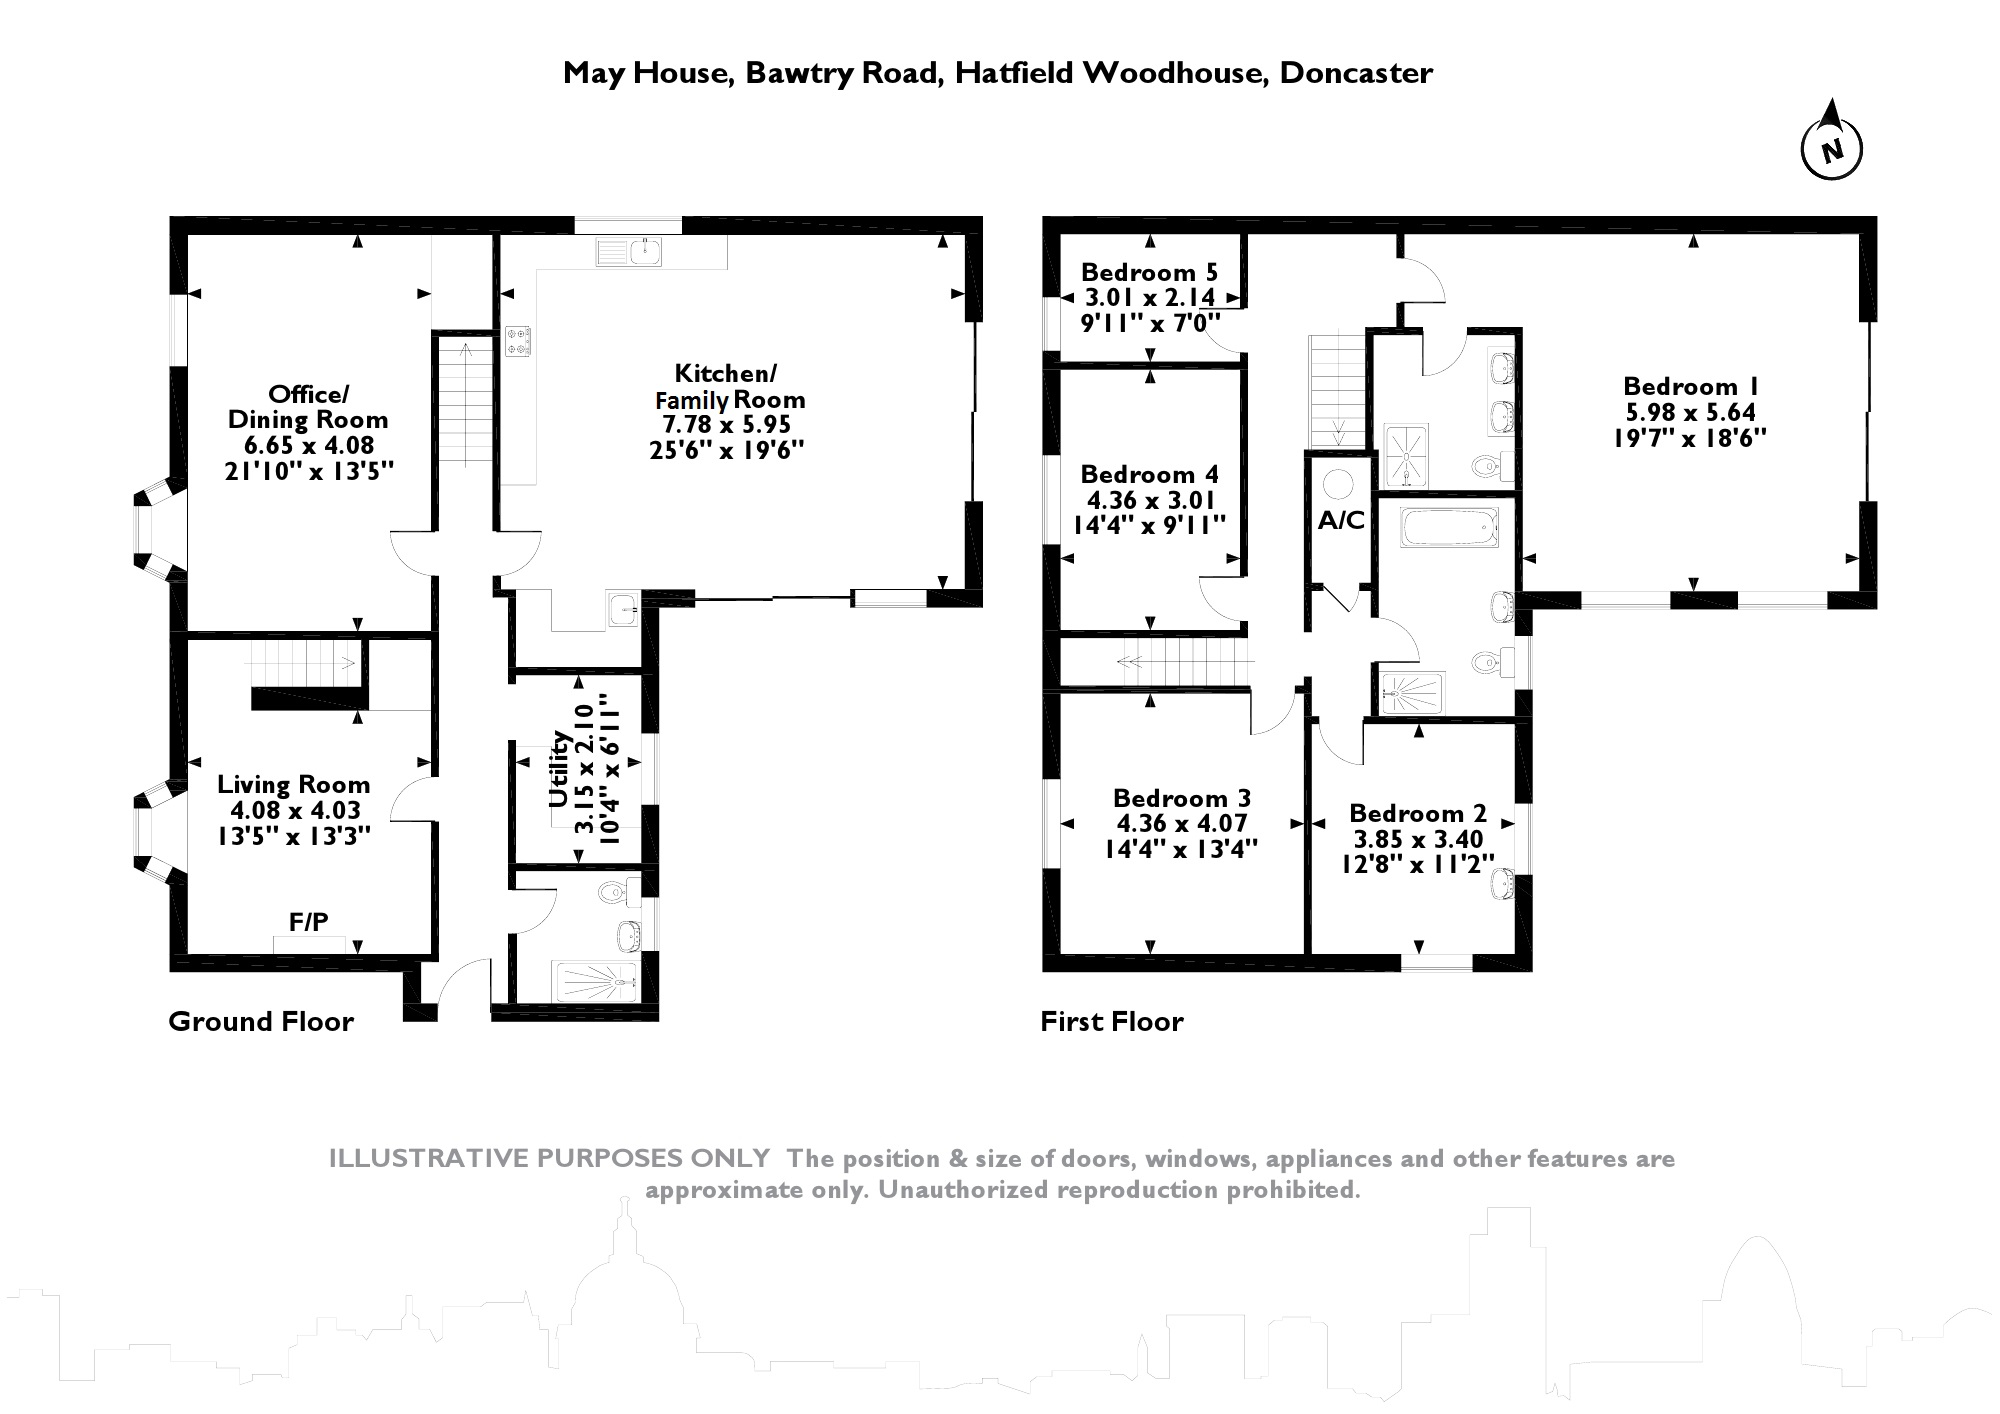 Bawtry Road, Hatfield Woodhouse, Doncaster floor plan